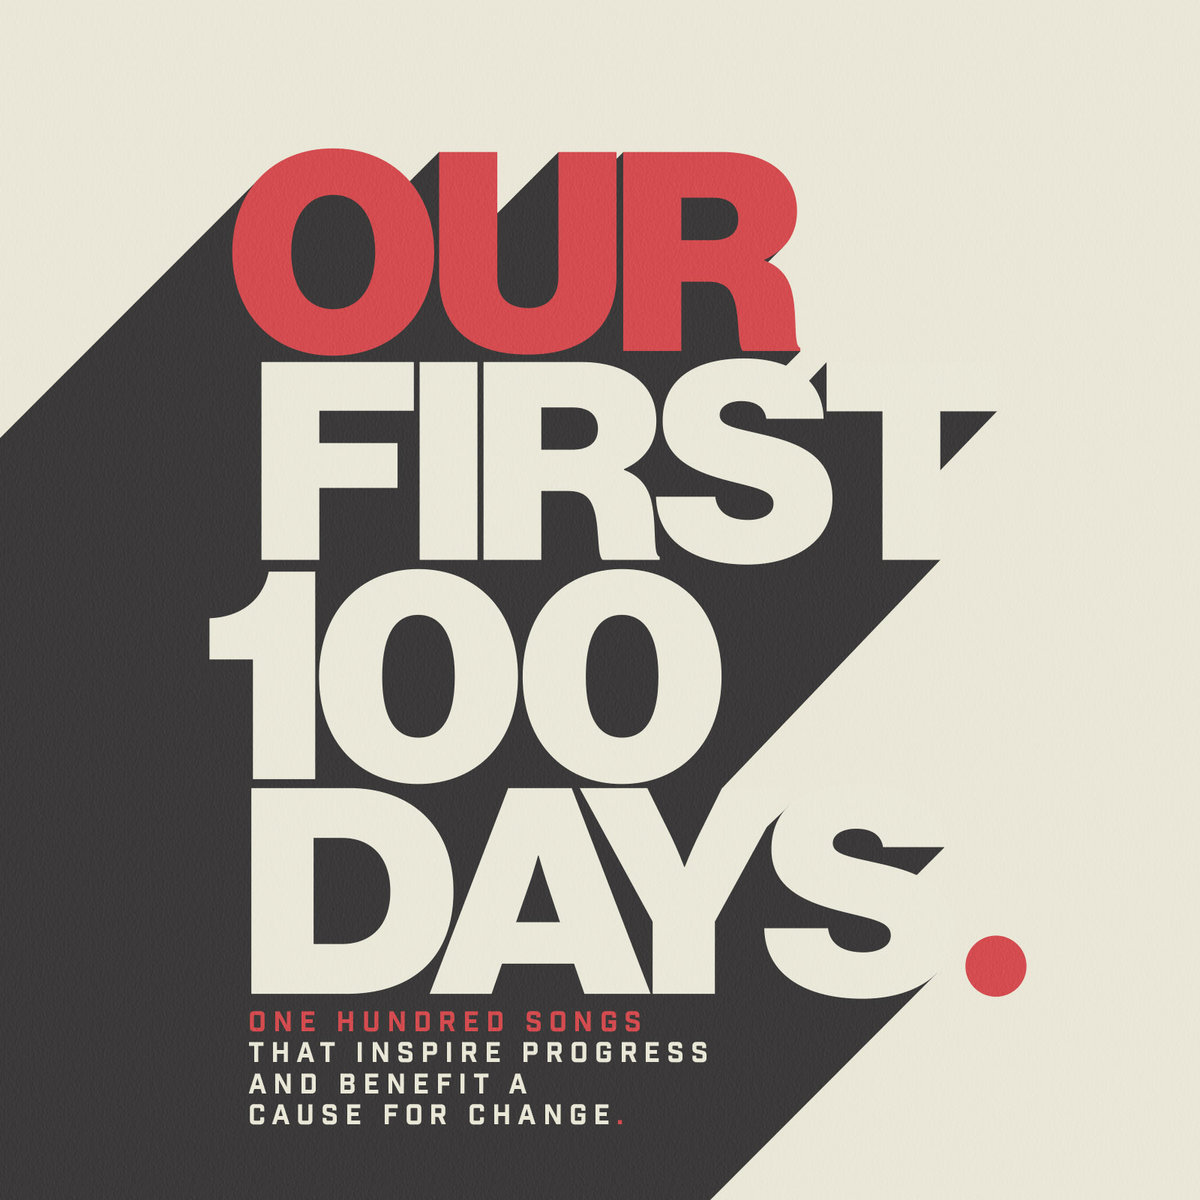 [NEWS] Get Familiar With The Music Initiative 'Our First 100 Days'